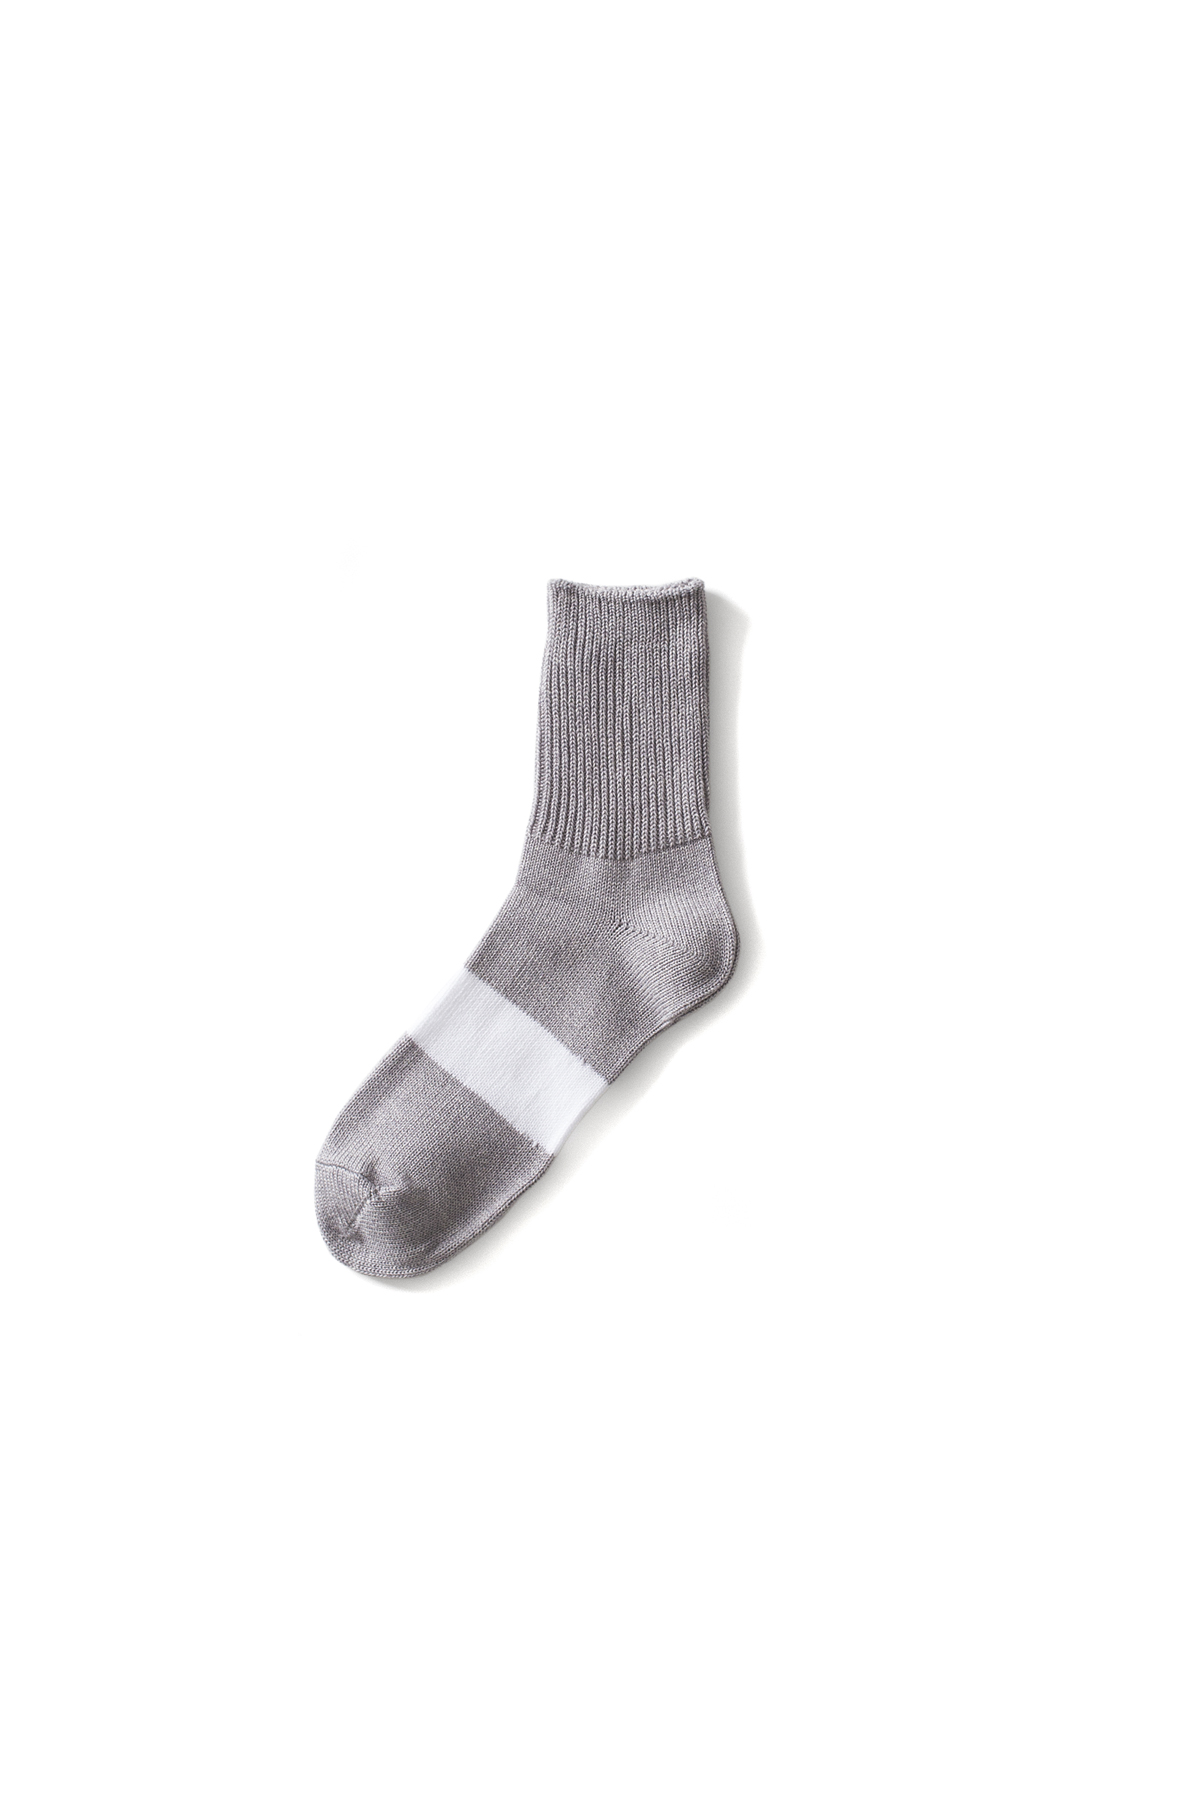 Roster Sox : Merceri Socks (Grey)